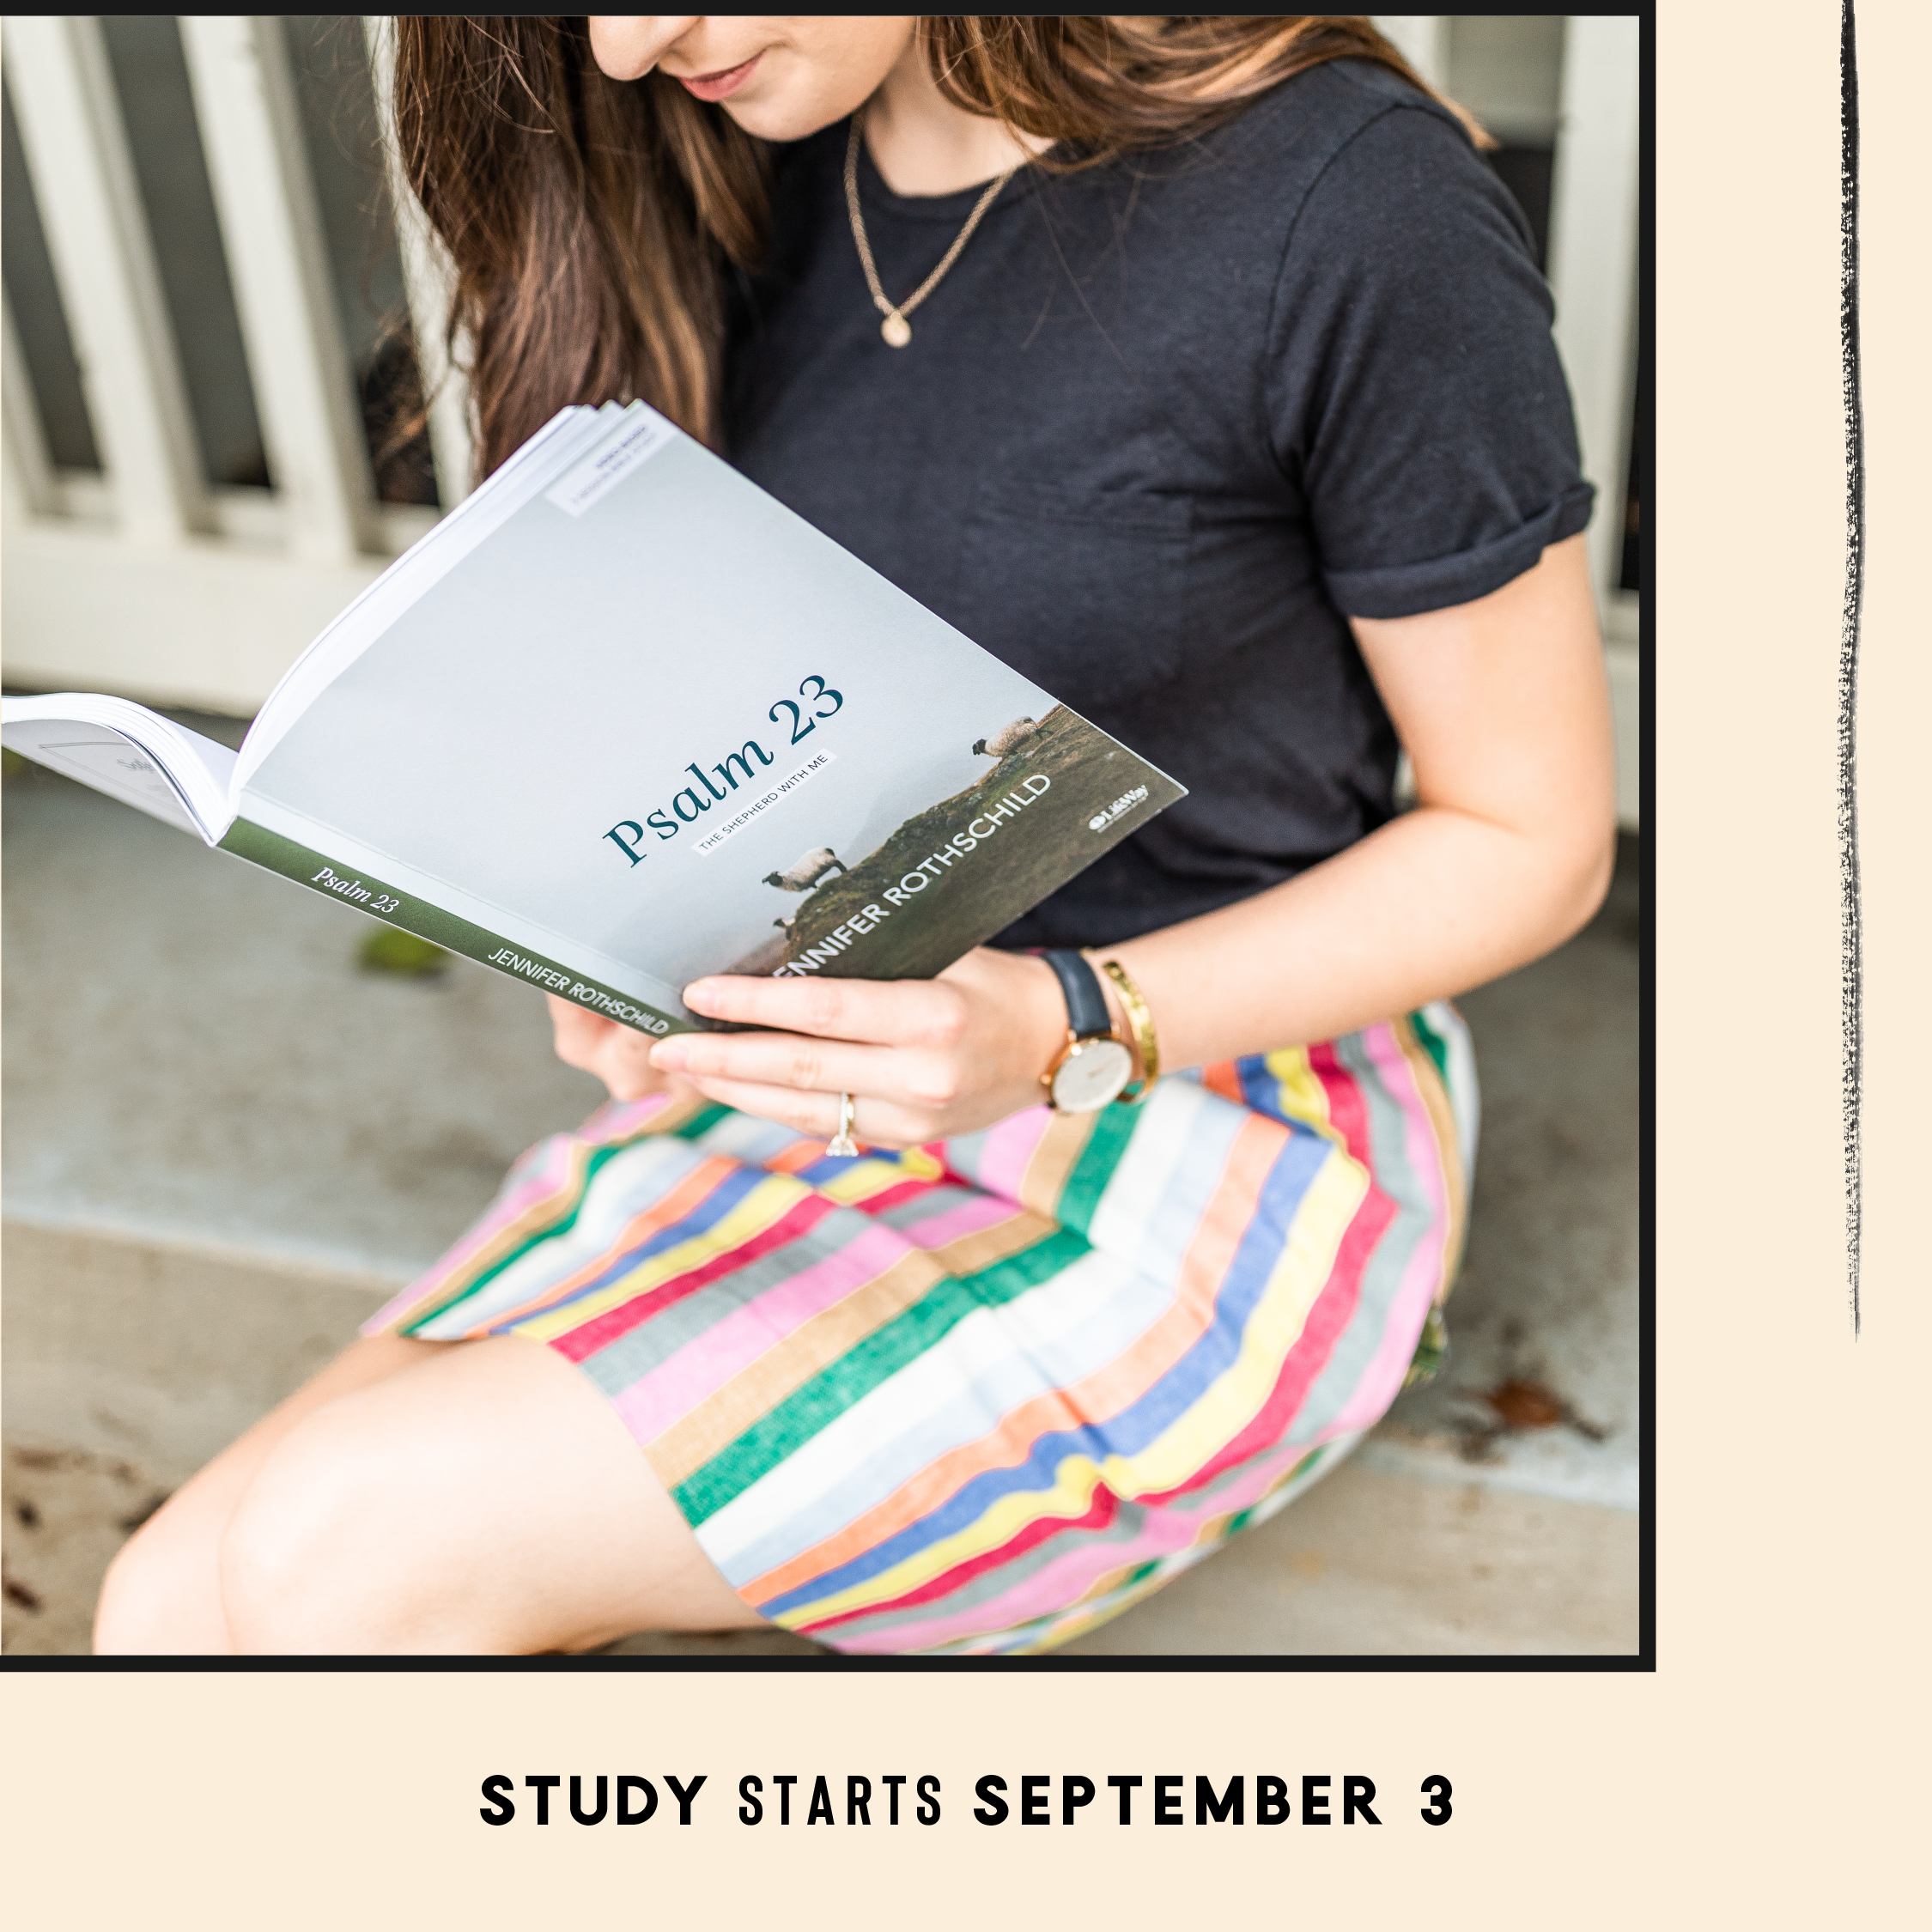 """The next Proverbs 31 Online Bible study is """"Psalm 23"""" by Jennifer Rothschild! Study starts September 3. Learn more and sign up here --> http://www.proverbs31.org/online-bible-studies/  #HiddenJoyBook #P31OBS"""